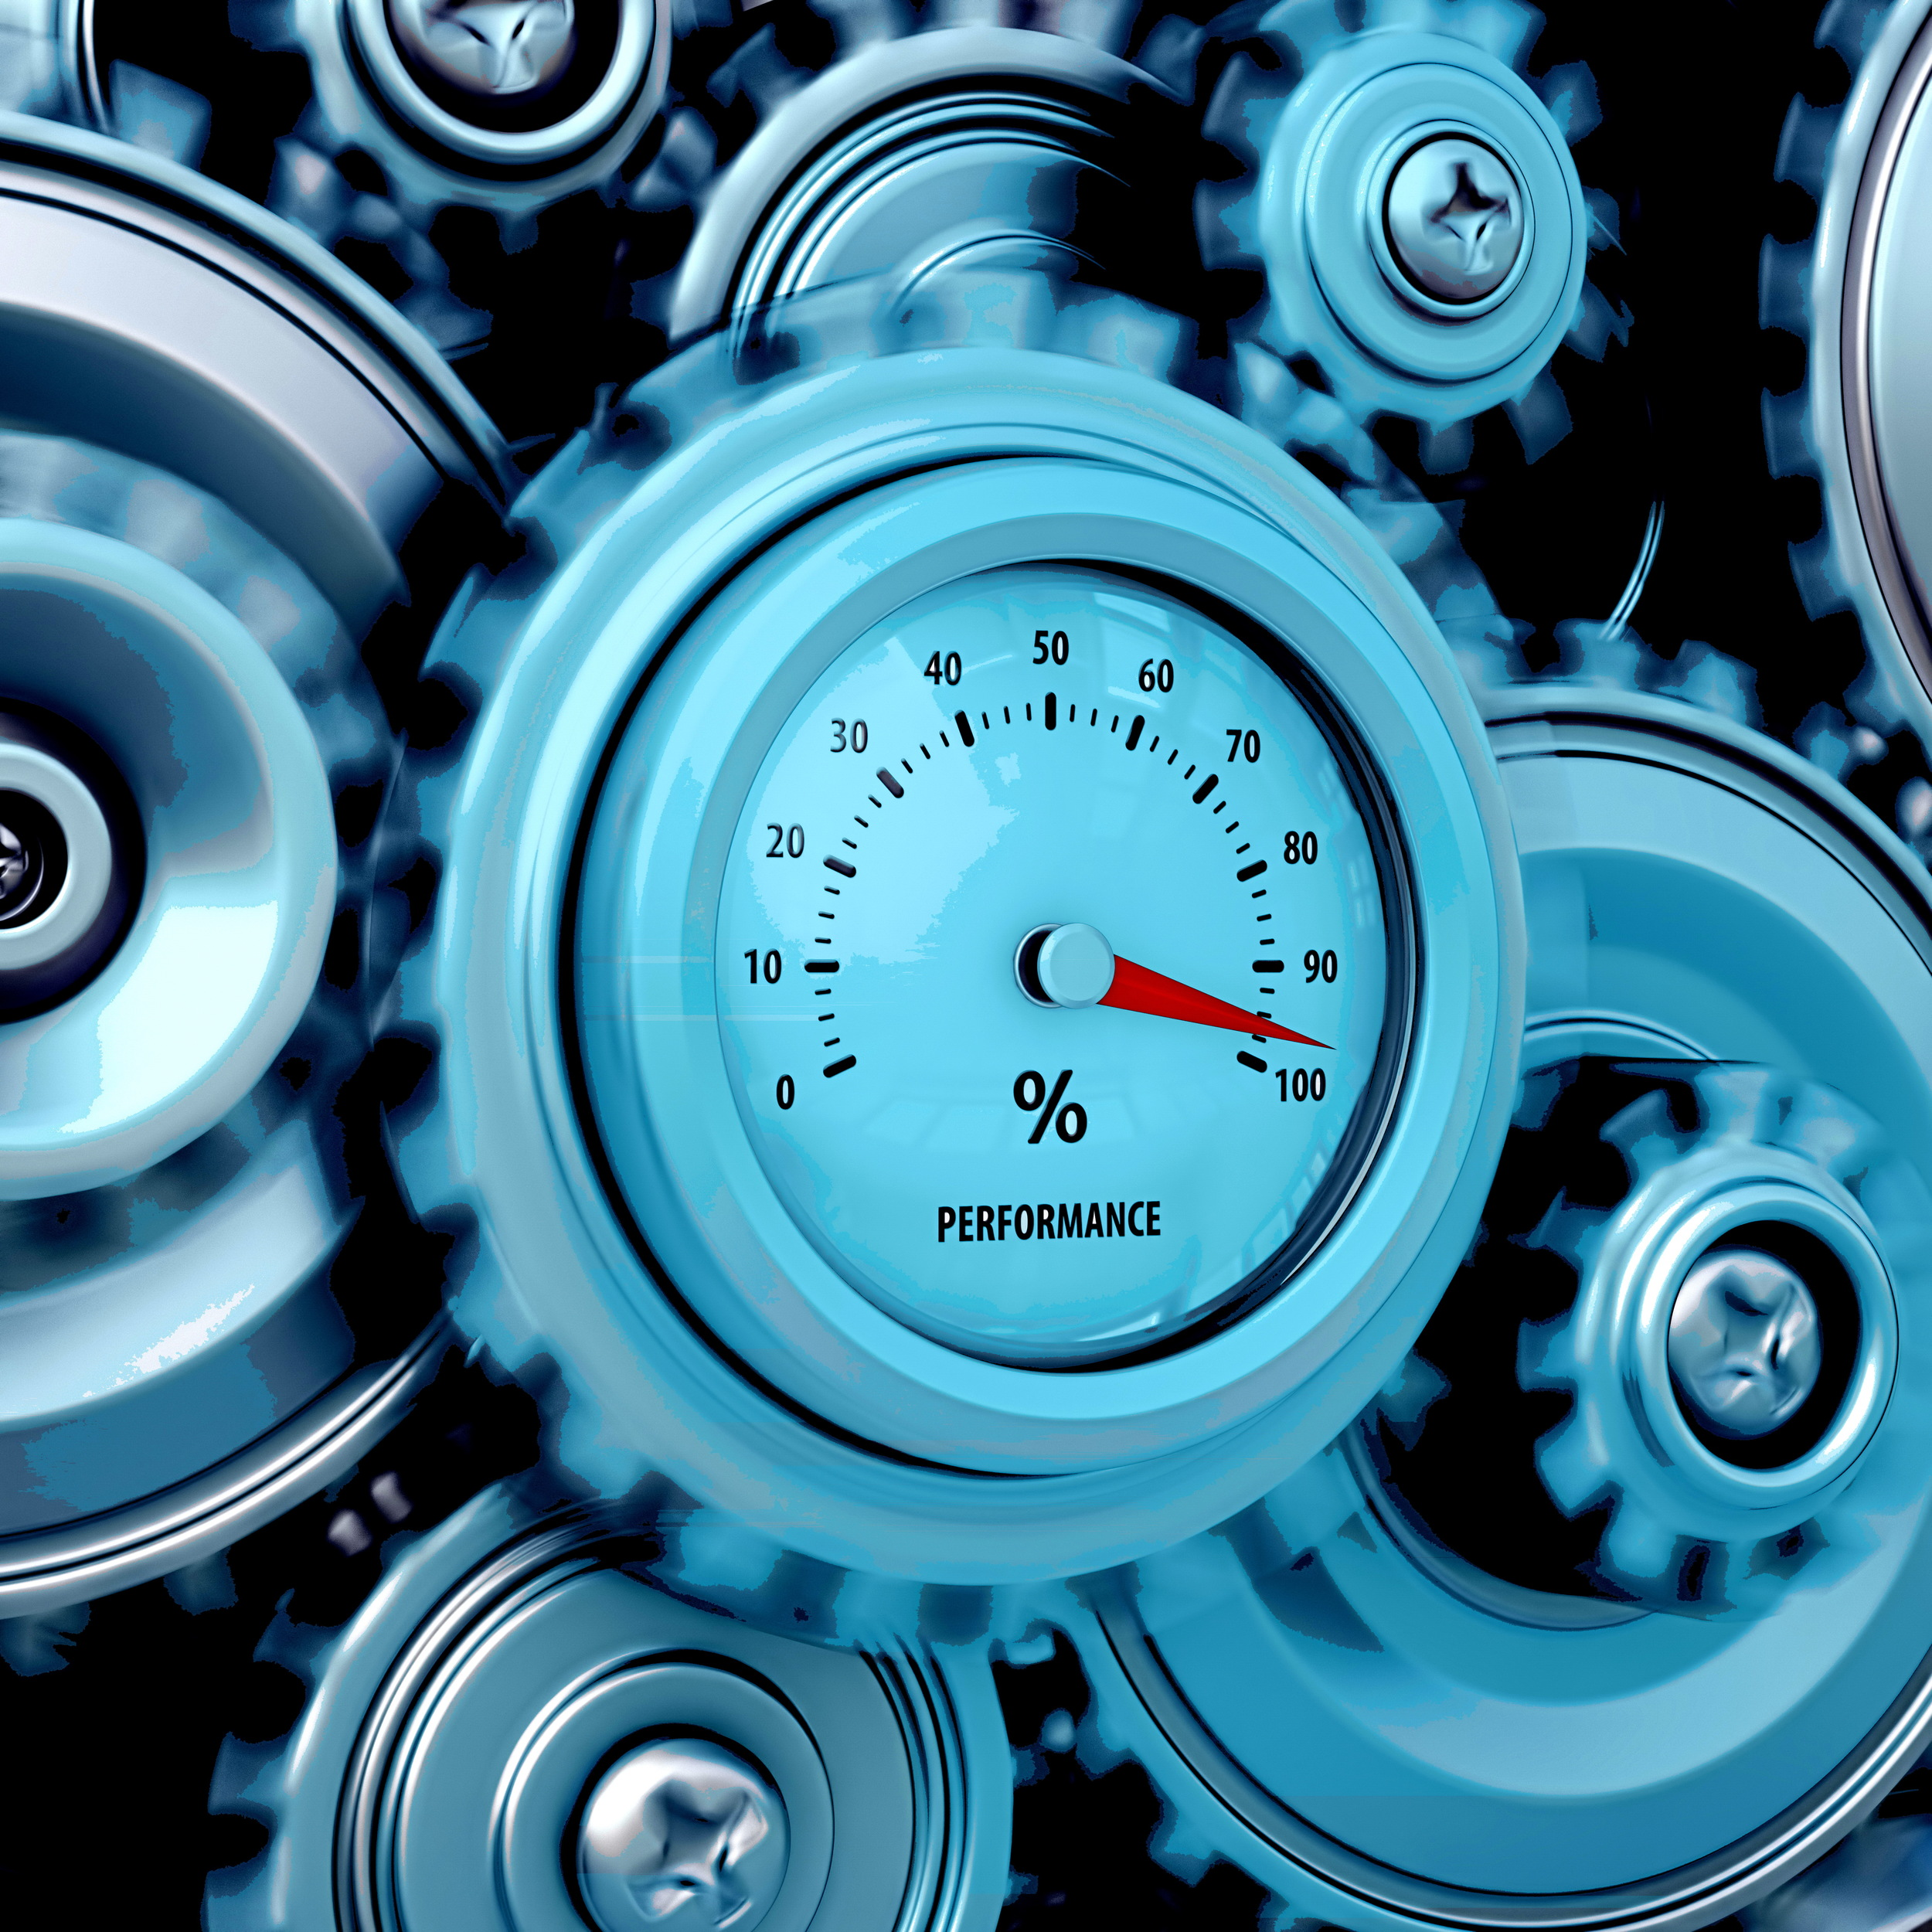 Benchmarking & Improving Performance of Rotating Equipment